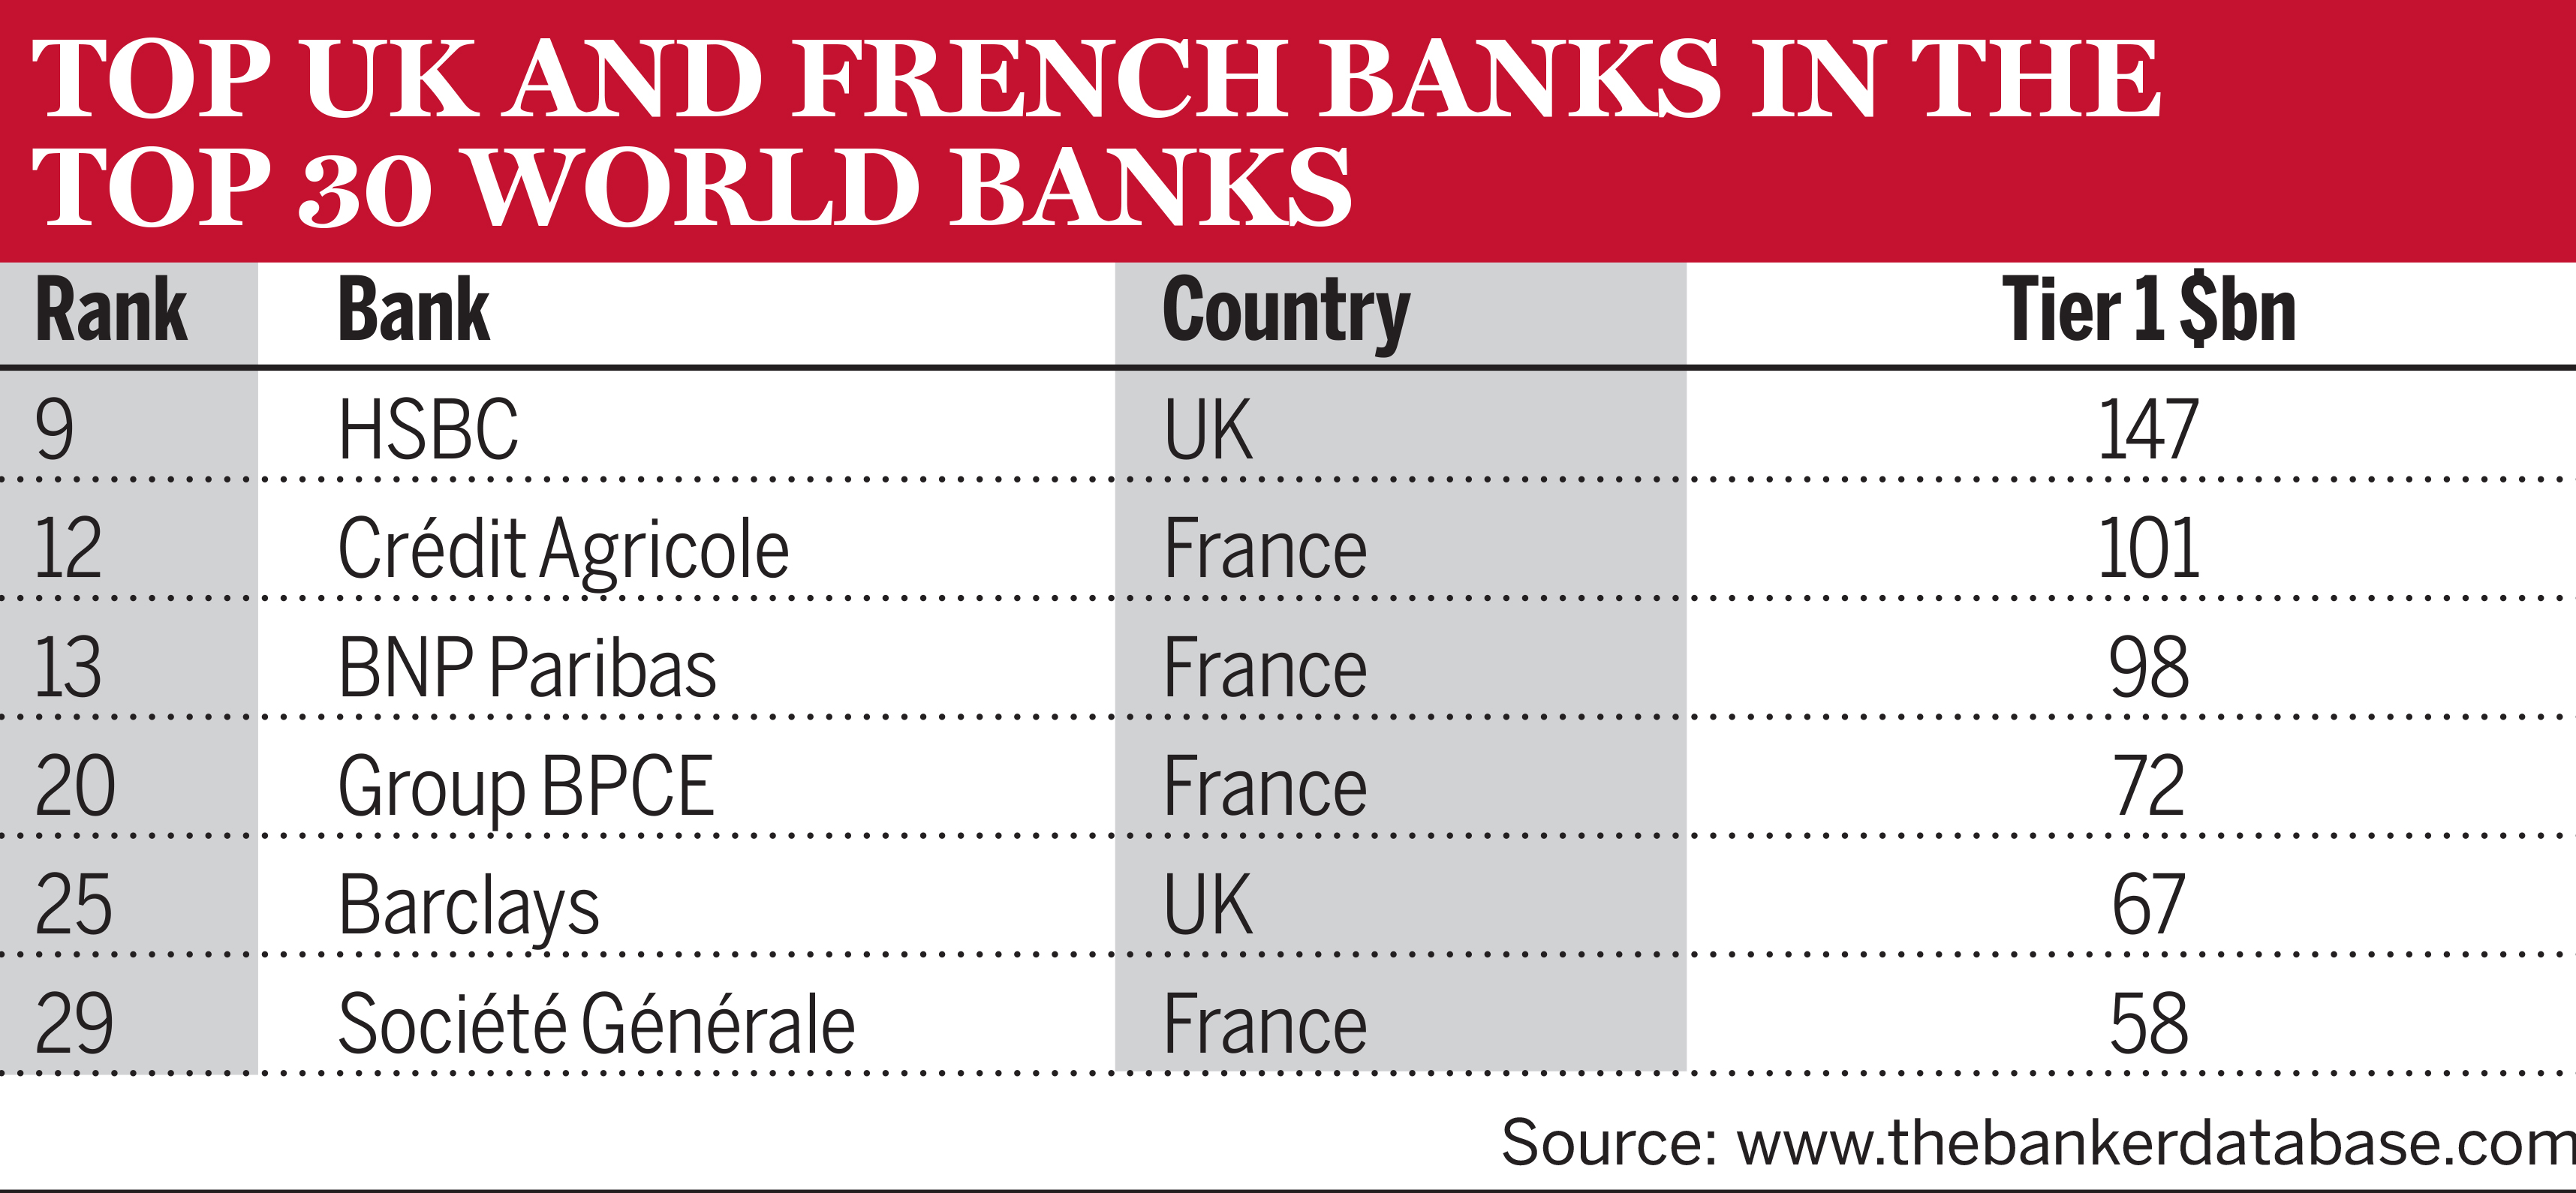 Top 1000 World Banks 2019 - The Banker UK Press Release – for